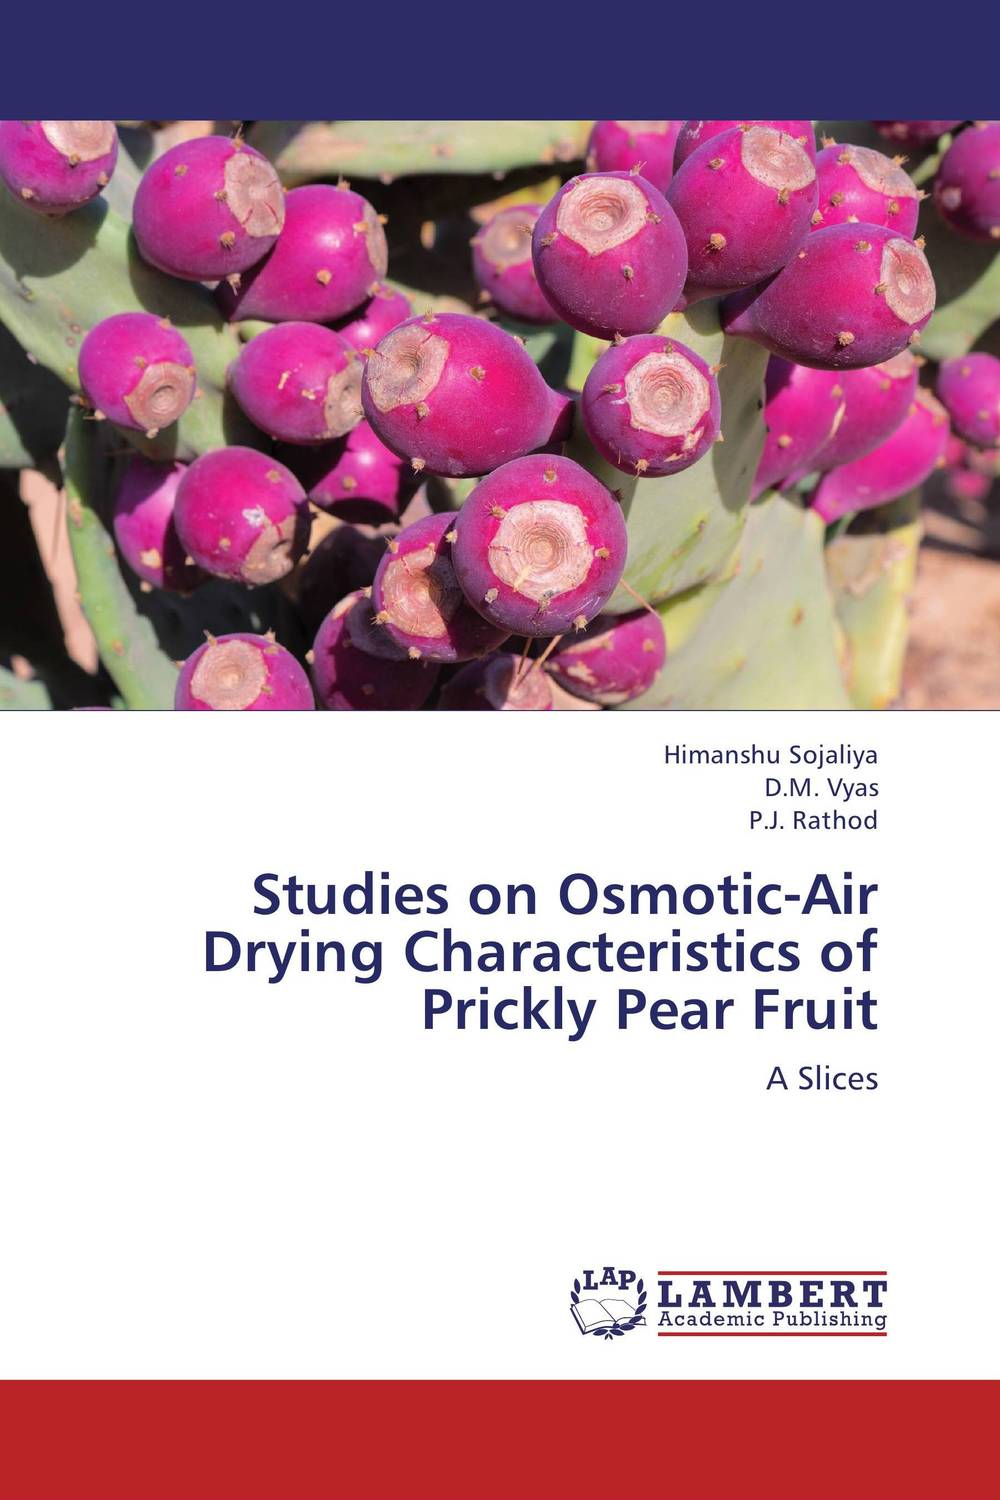 Studies on Osmotic-Air Drying Characteristics of Prickly Pear Fruit hand held brix refractometer tester meter with atc calibration oil sugar 0 32% tools for fruit vegetables juice 50% off